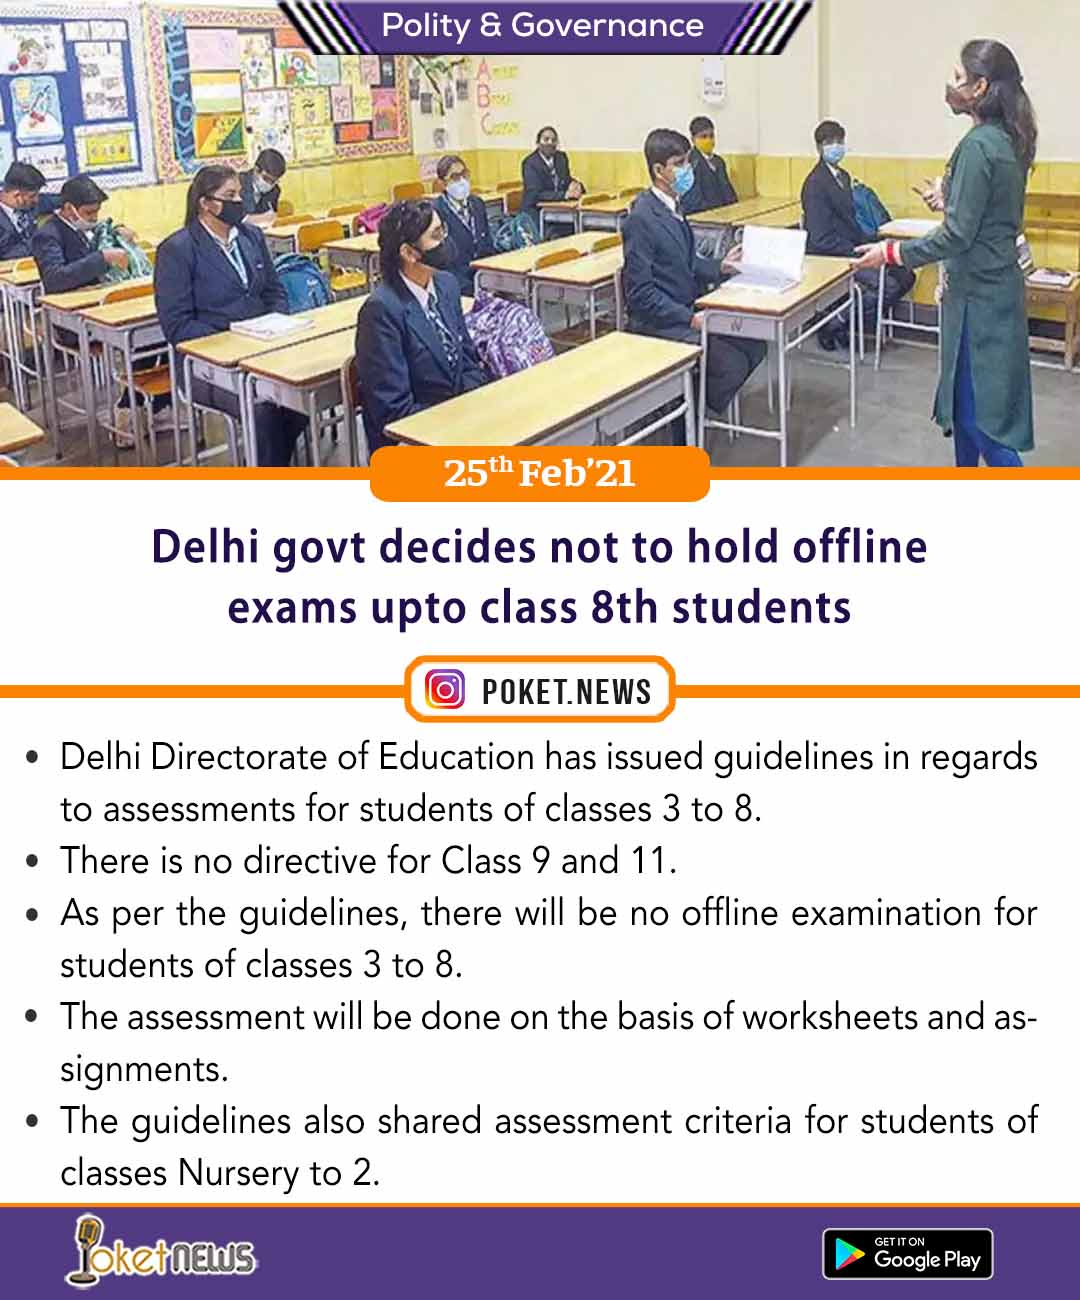 Delhi govt decides not to hold offline exams upto class 8th students